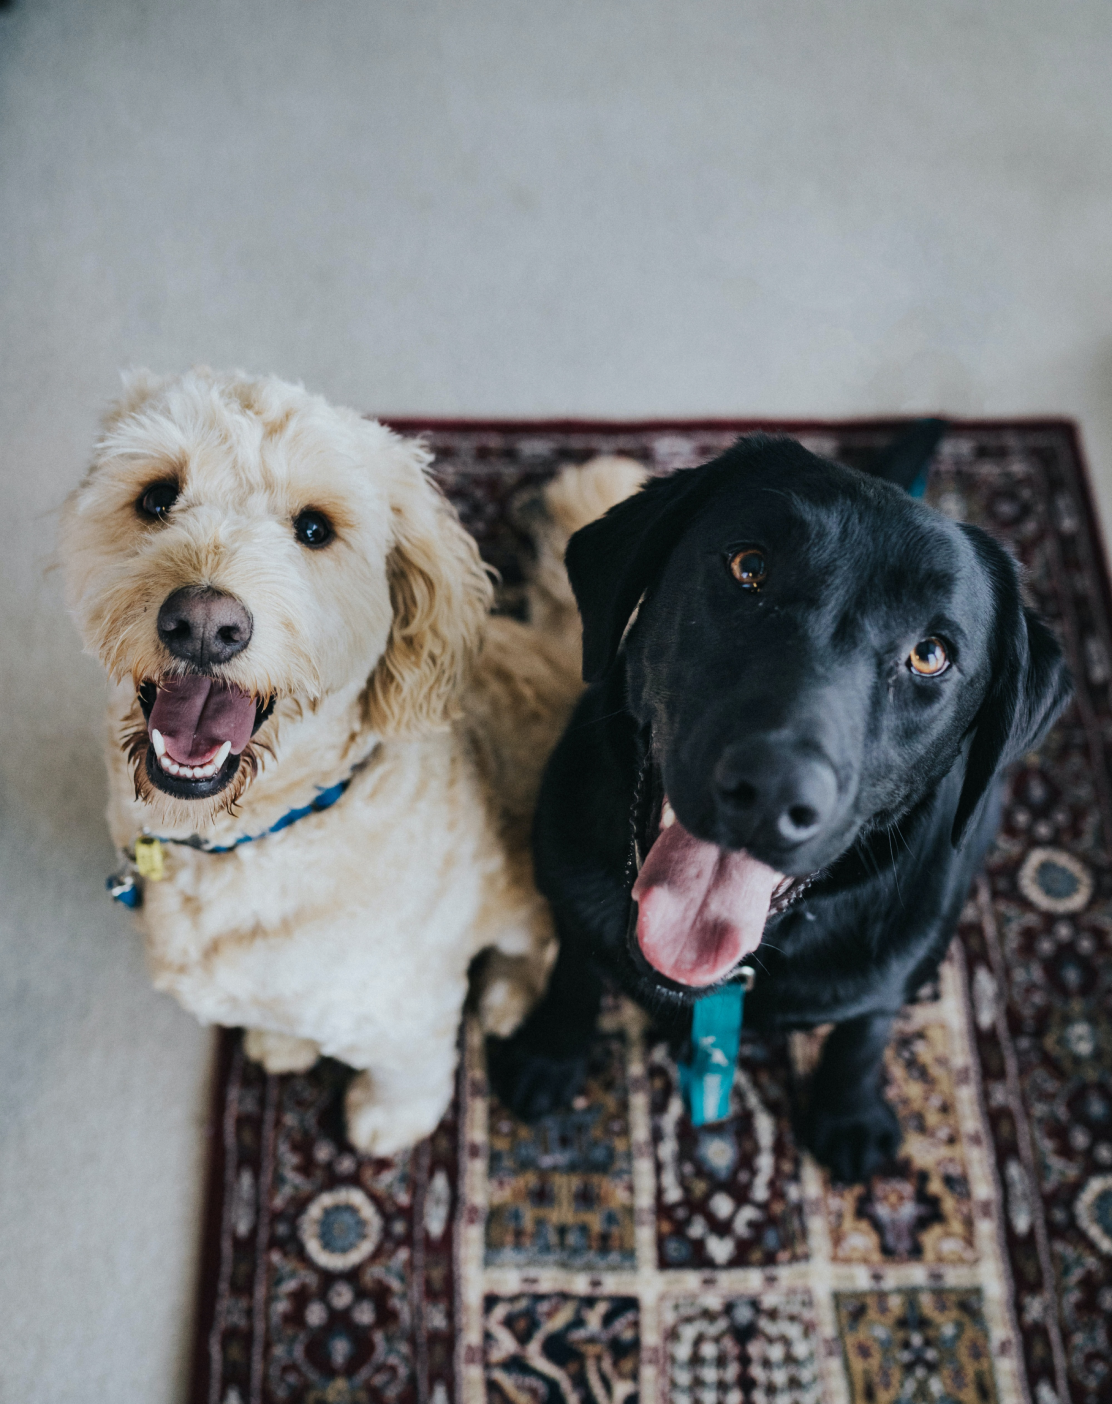 Two dogs sitting on a carpet with their tongues out looking at the camera